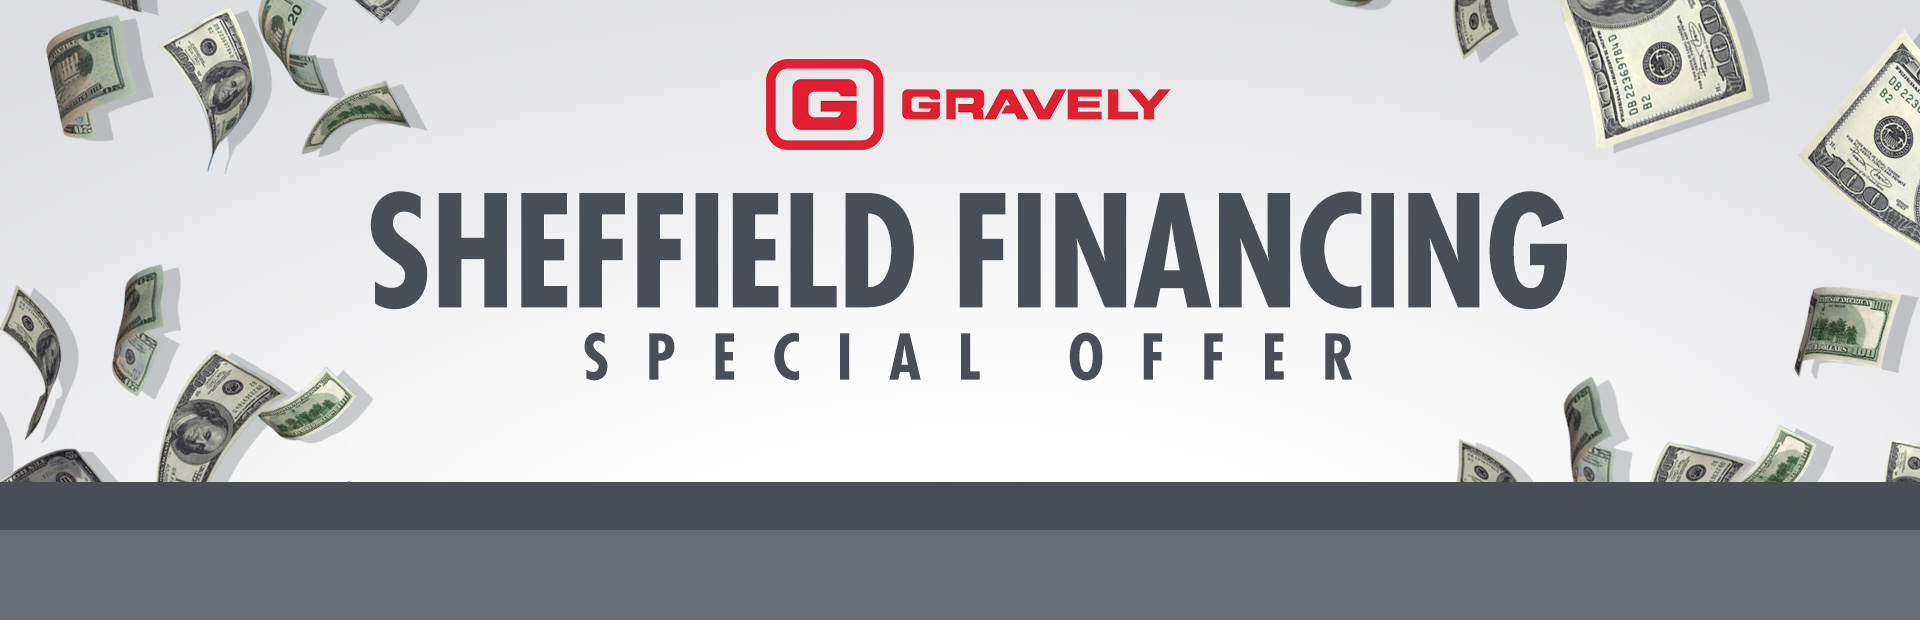 Gravely: Sheffield Financing - Special Offer